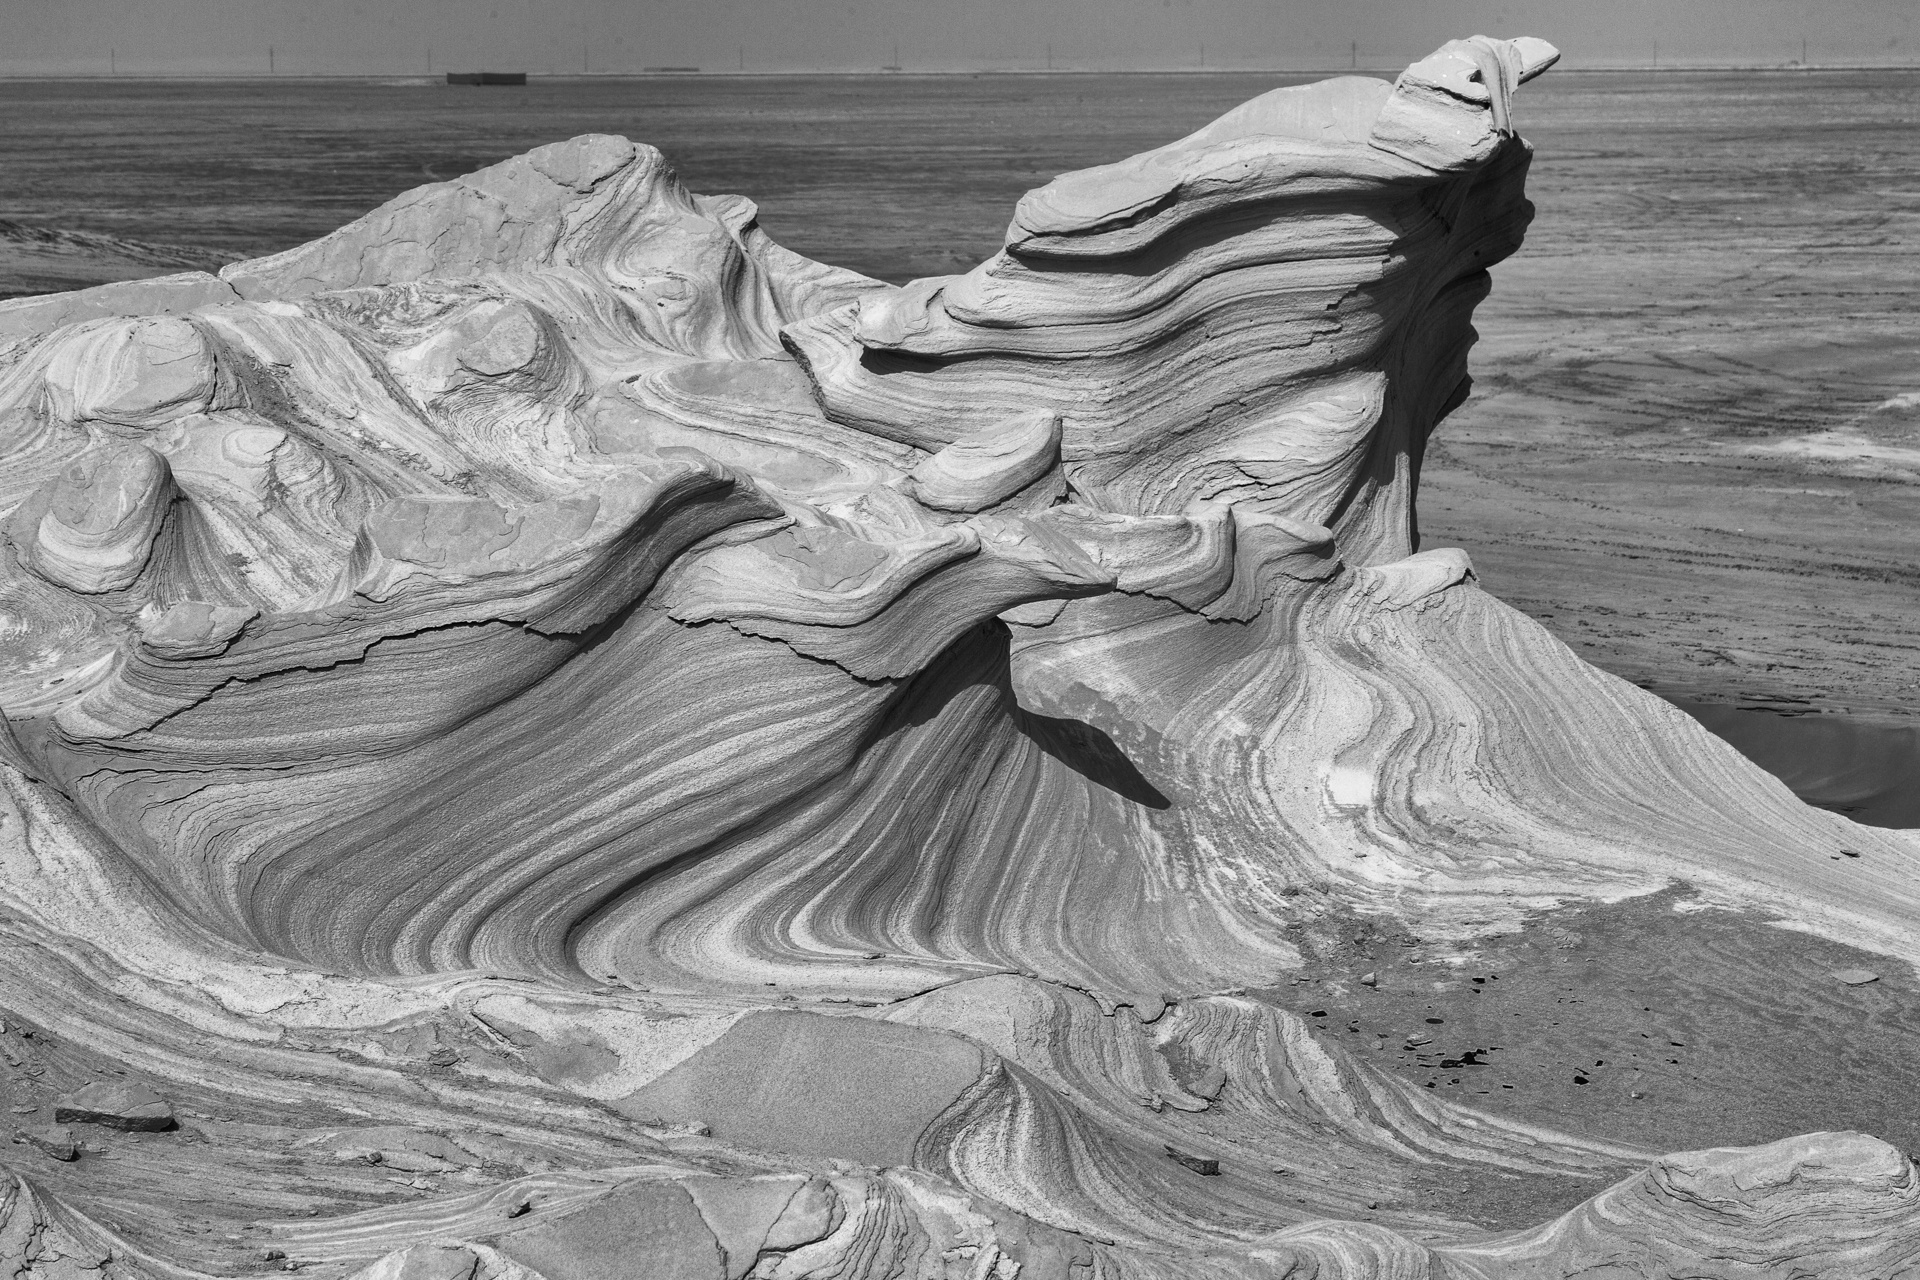 Fossil Dunes - weathered formations